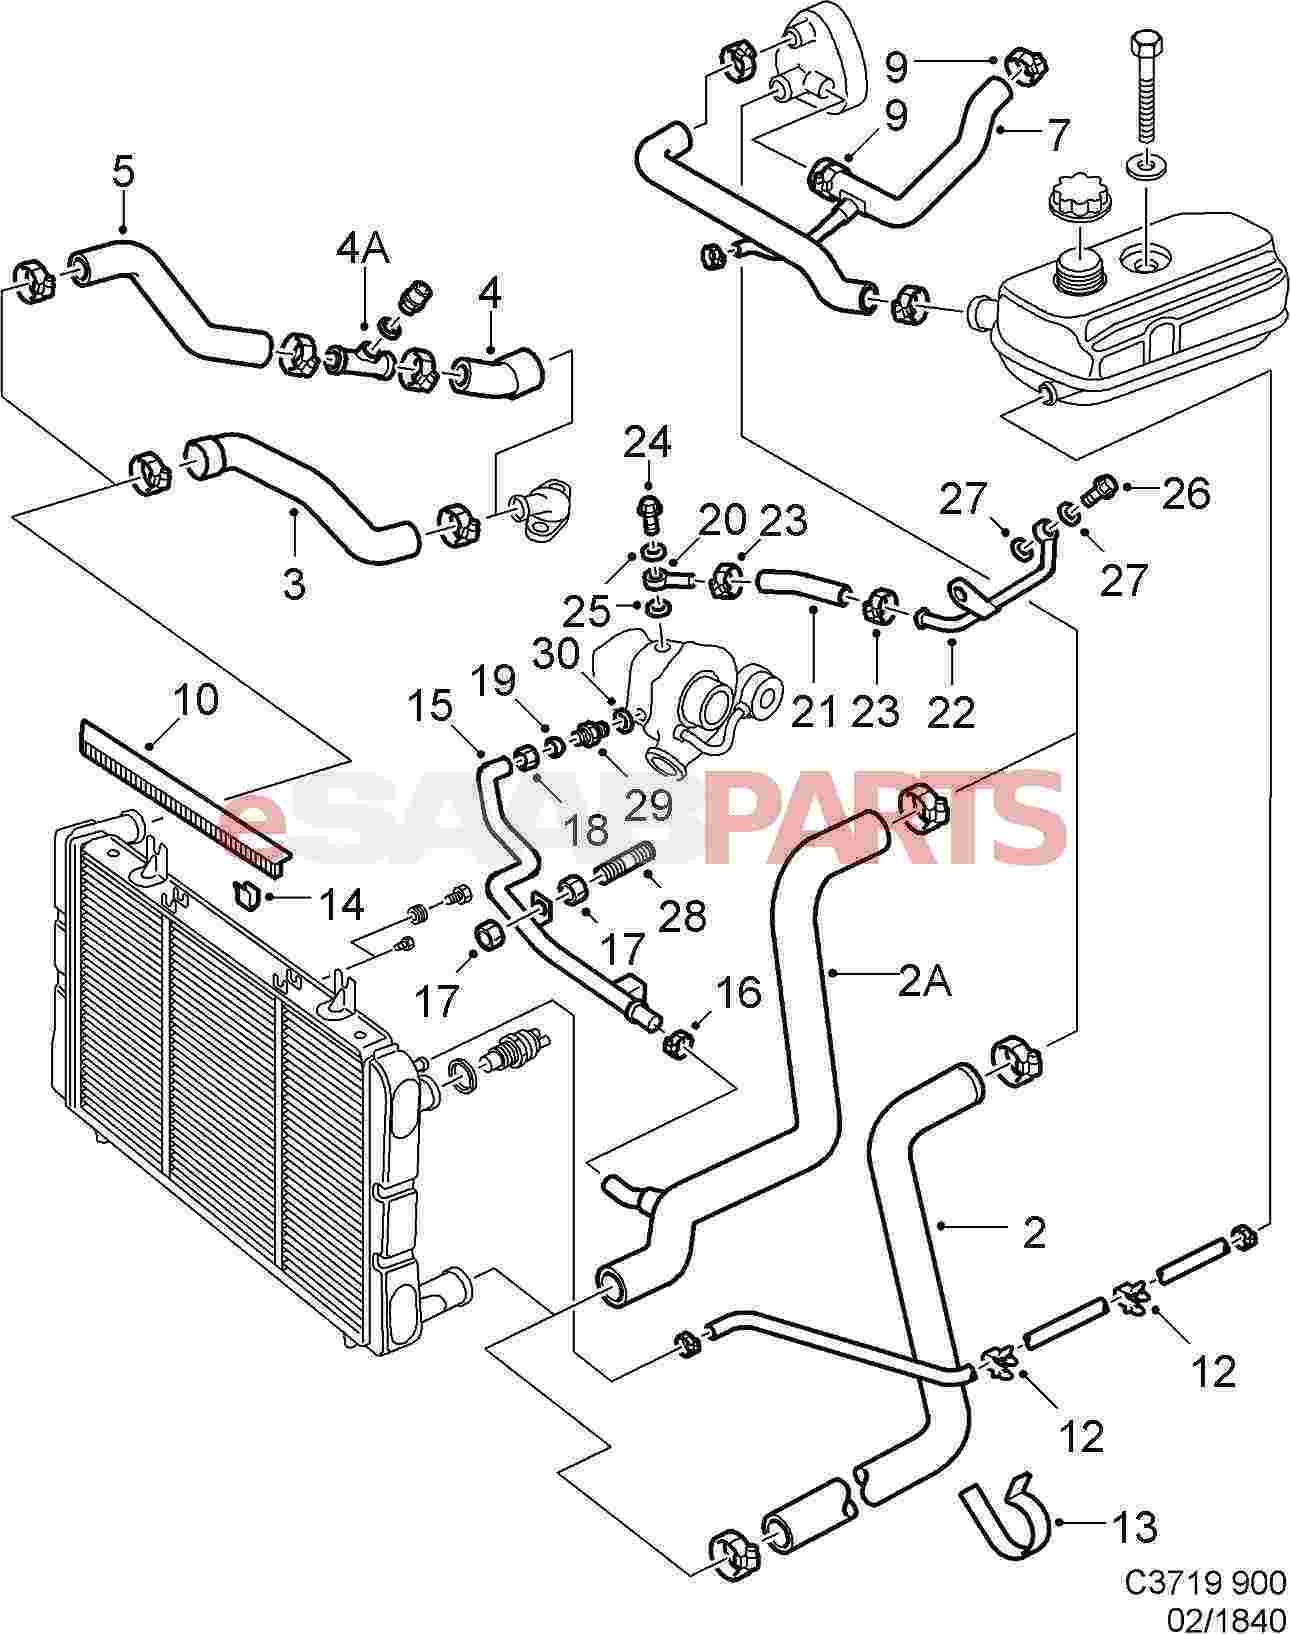 hight resolution of 2011 vw jetta engine diagram wiring diagram load 2011 vw jetta engine diagram 2011 jetta engine diagram